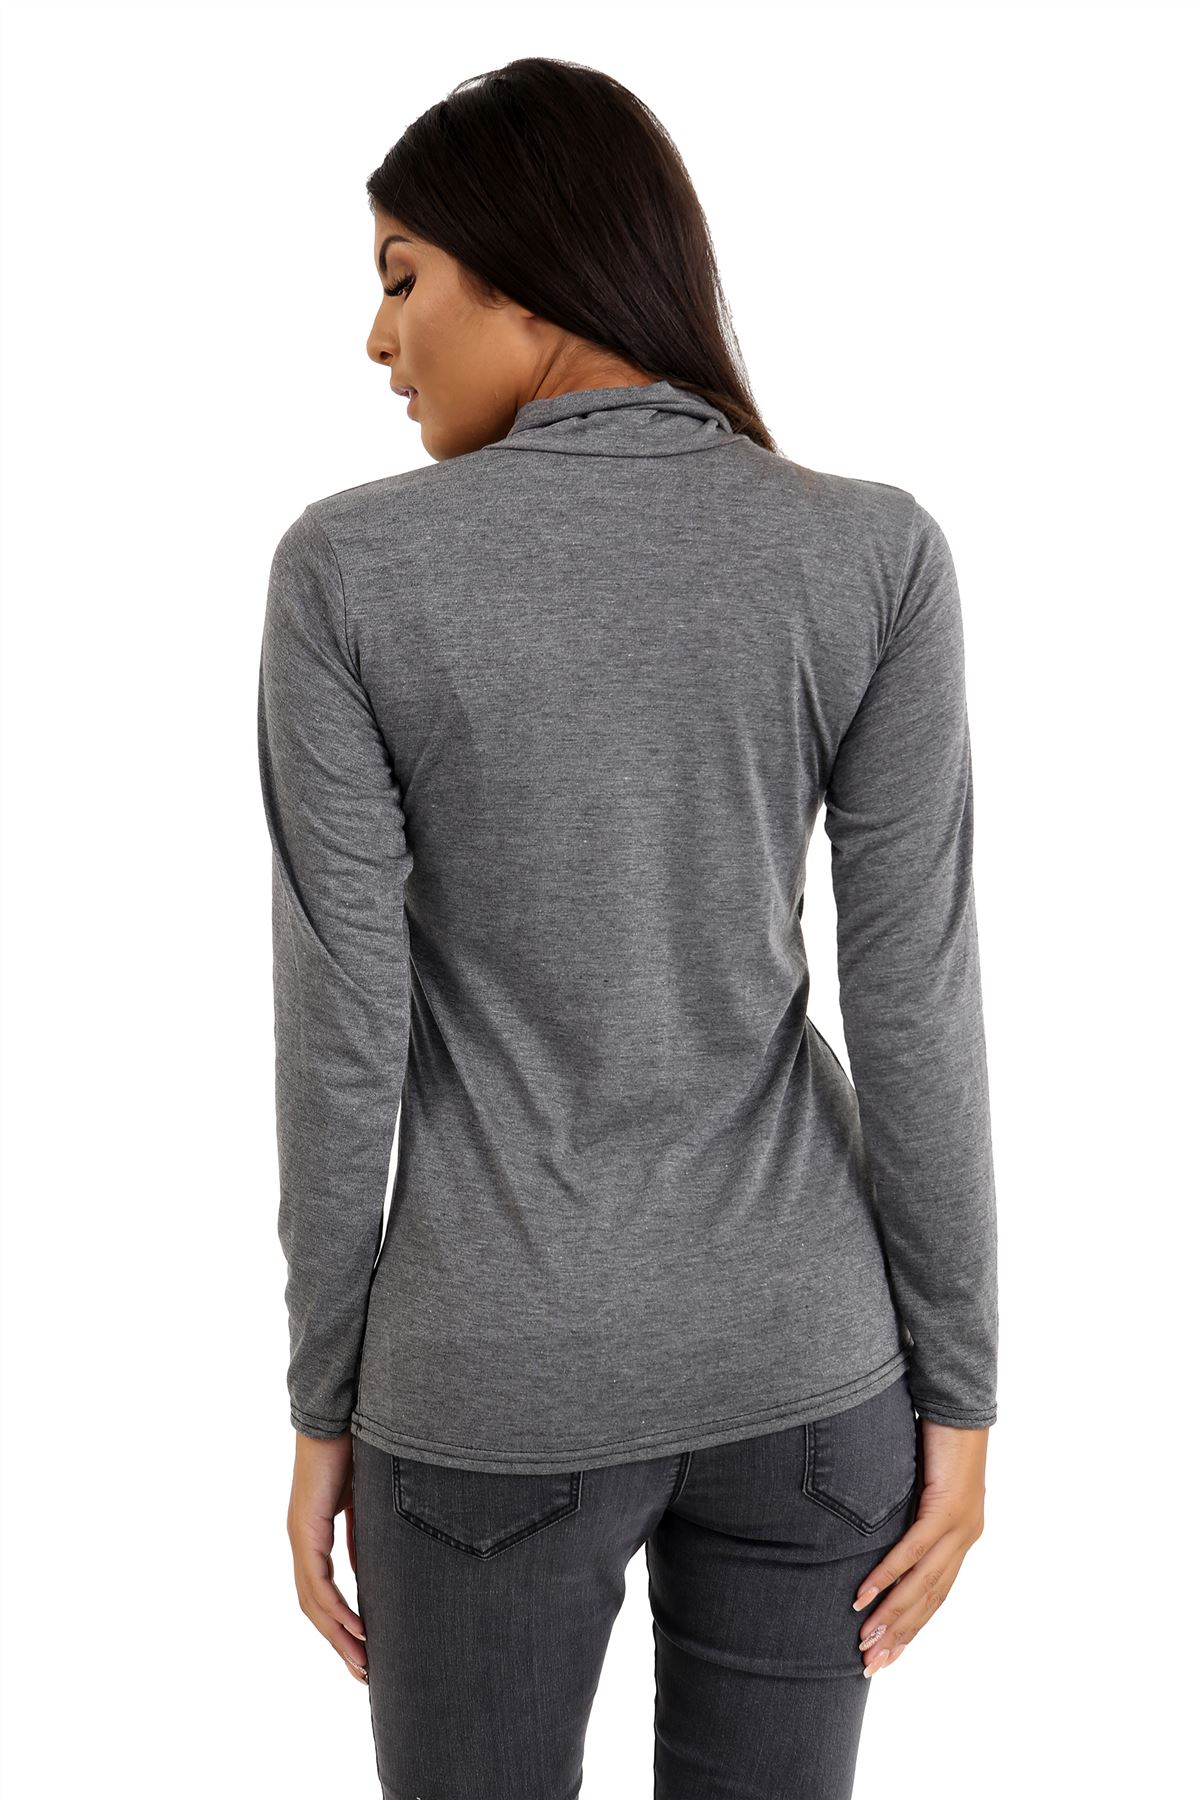 New-Ladies-Long-Sleeve-Plain-Turtle-Polo-Roll-Neck-Stretch-Jumper-T-Shirt-TeeTop thumbnail 24